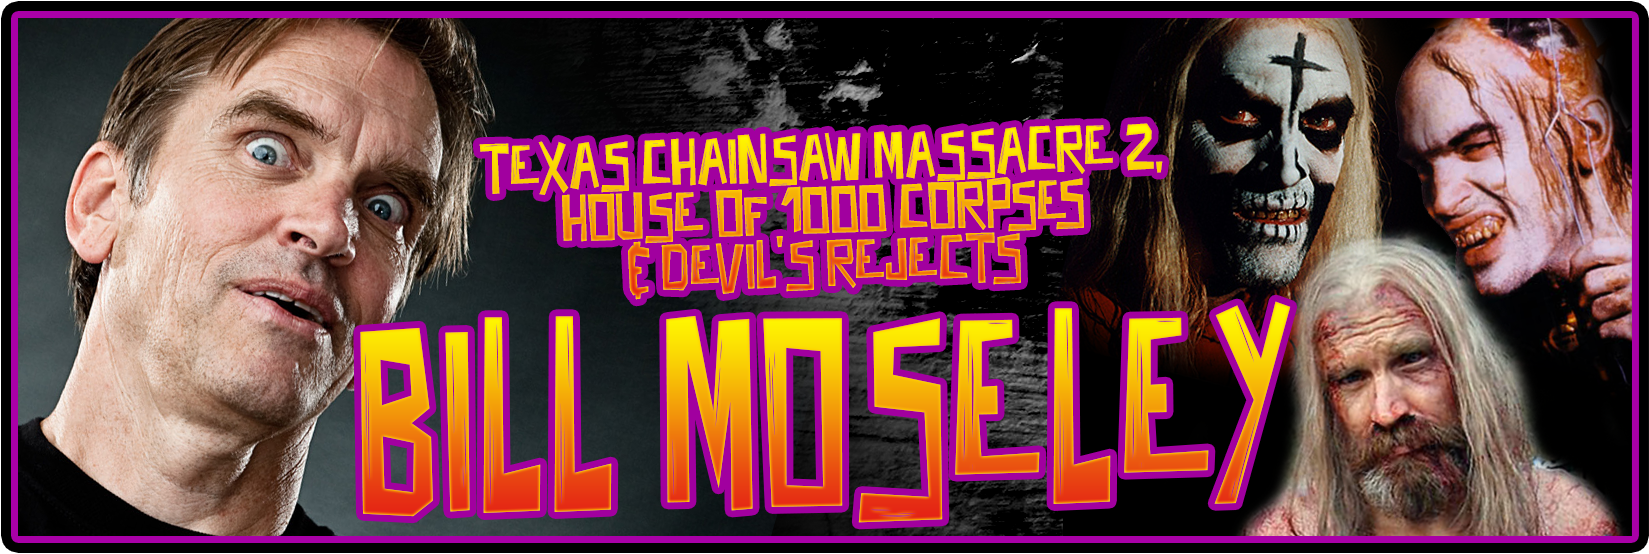 Bill-Moseley-Banner-1.png